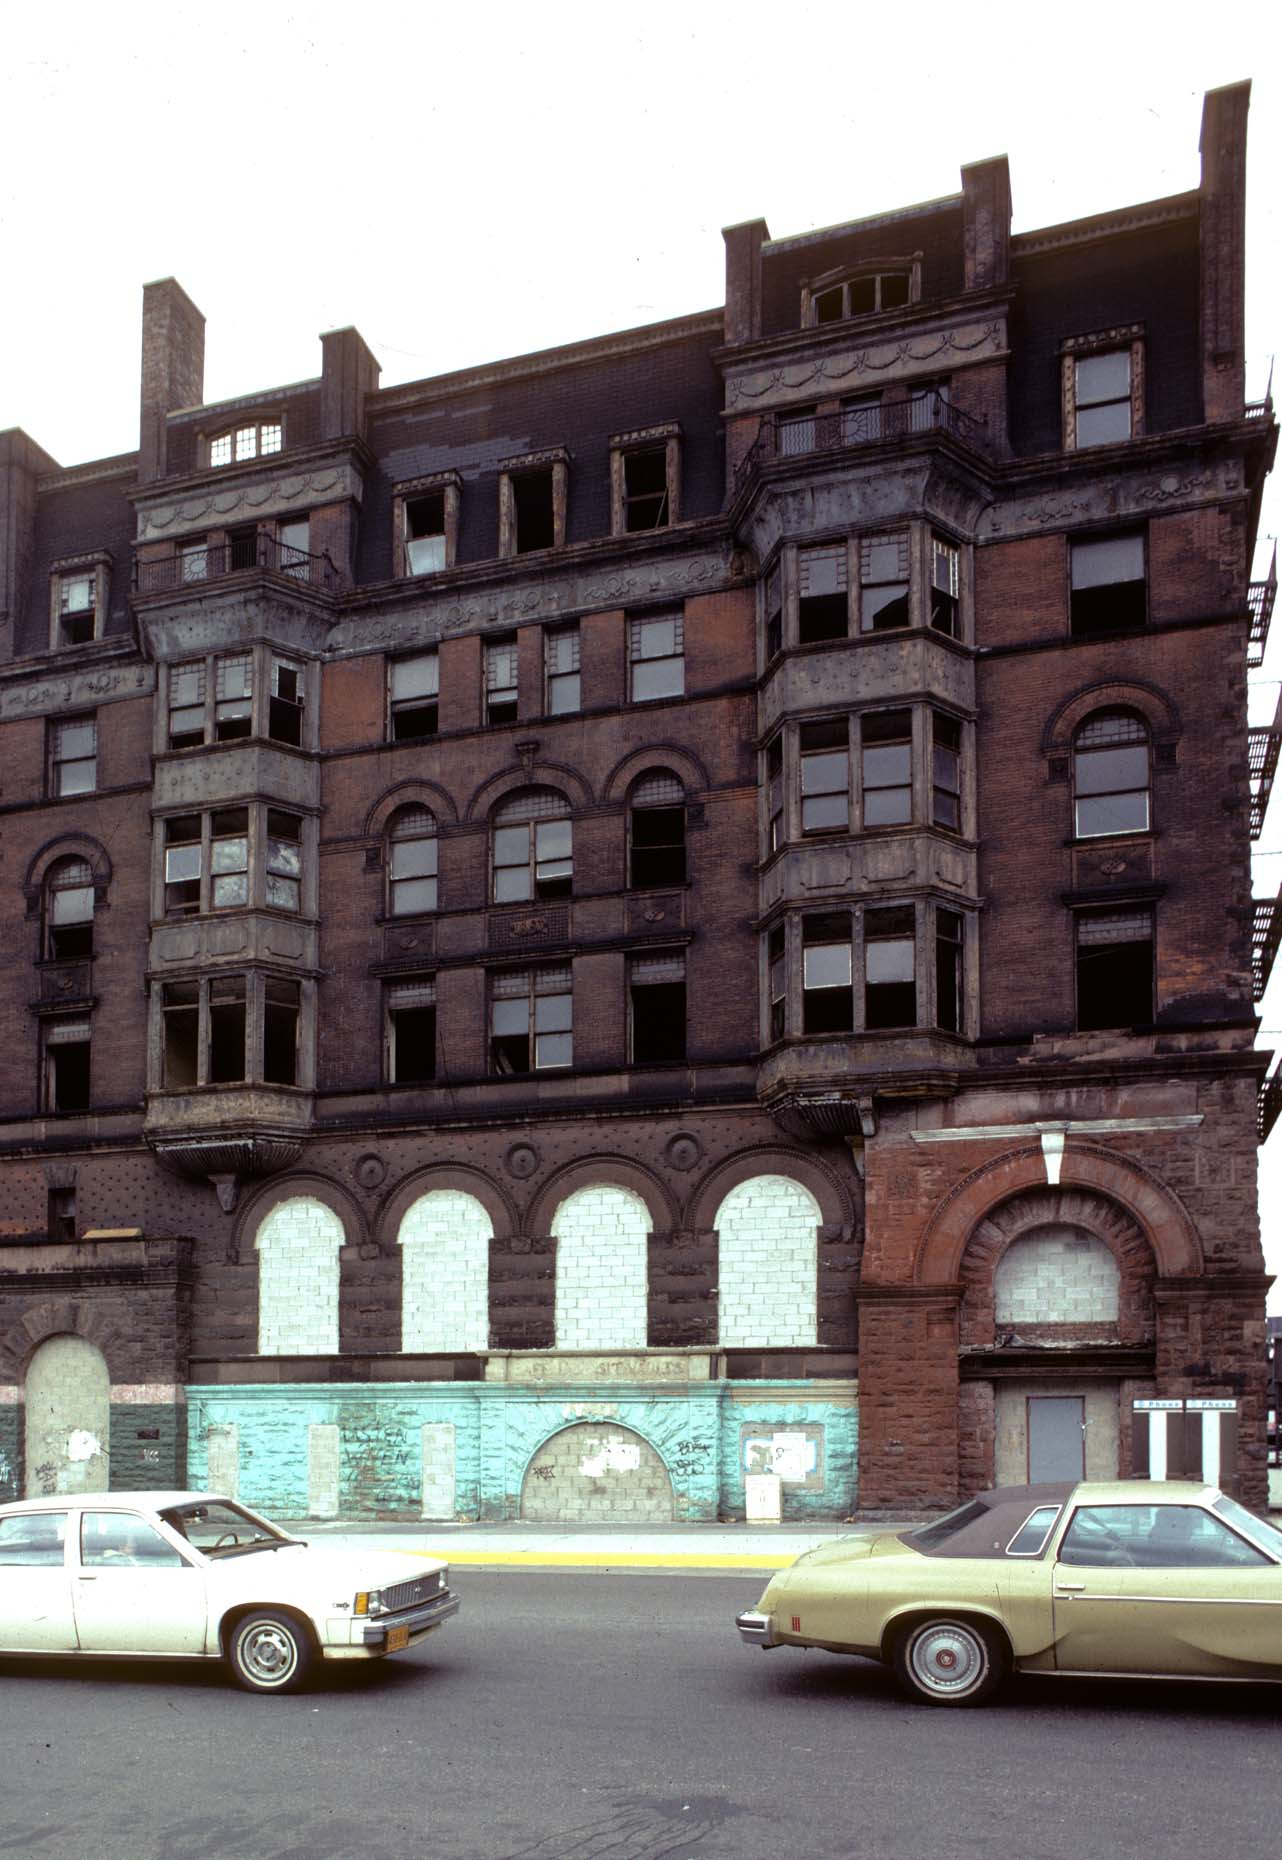 01_NW corner of Park Ave at E 125th St, Harlem, 1982_-DUP10.jpg